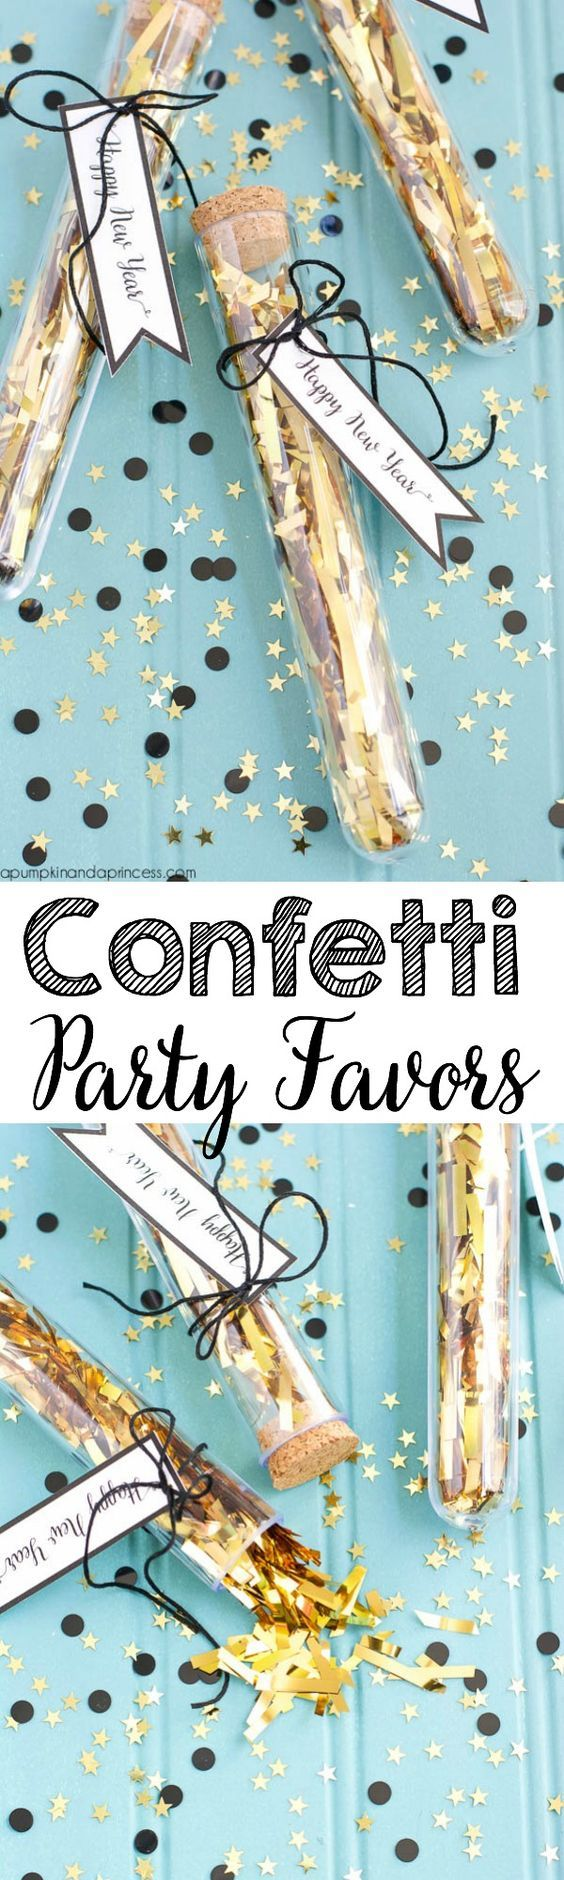 DIY Confetti Party Favors from @crystalowens | NYE Favors | New Year's Eve Party Ideas